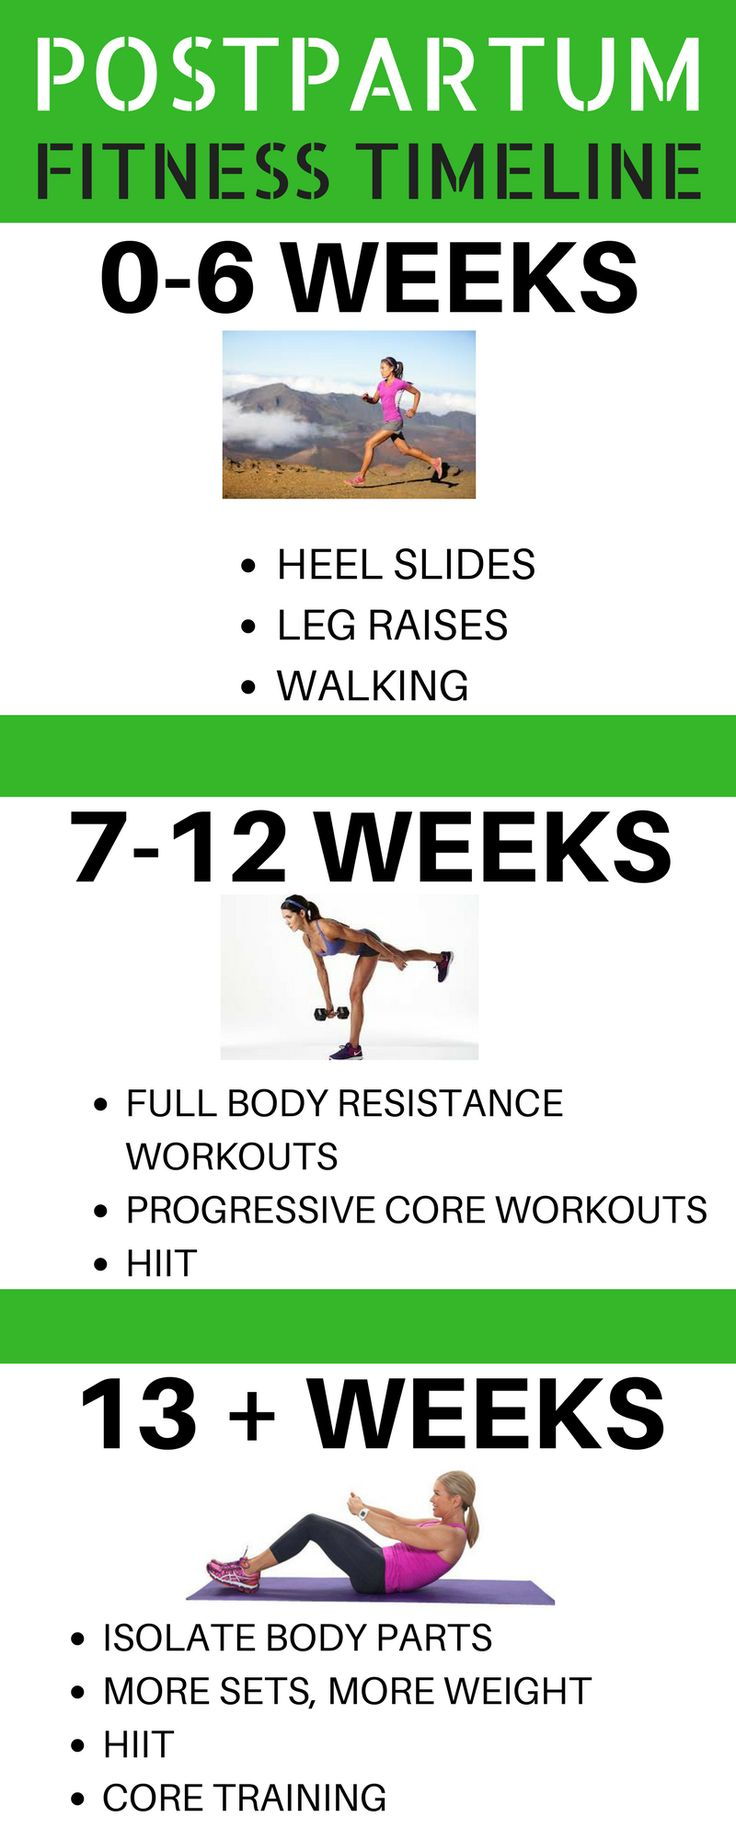 Postpartum Exercise Guidelines to lose the baby weight as fast and safe as possible.  Workout examples are given, this is so good.